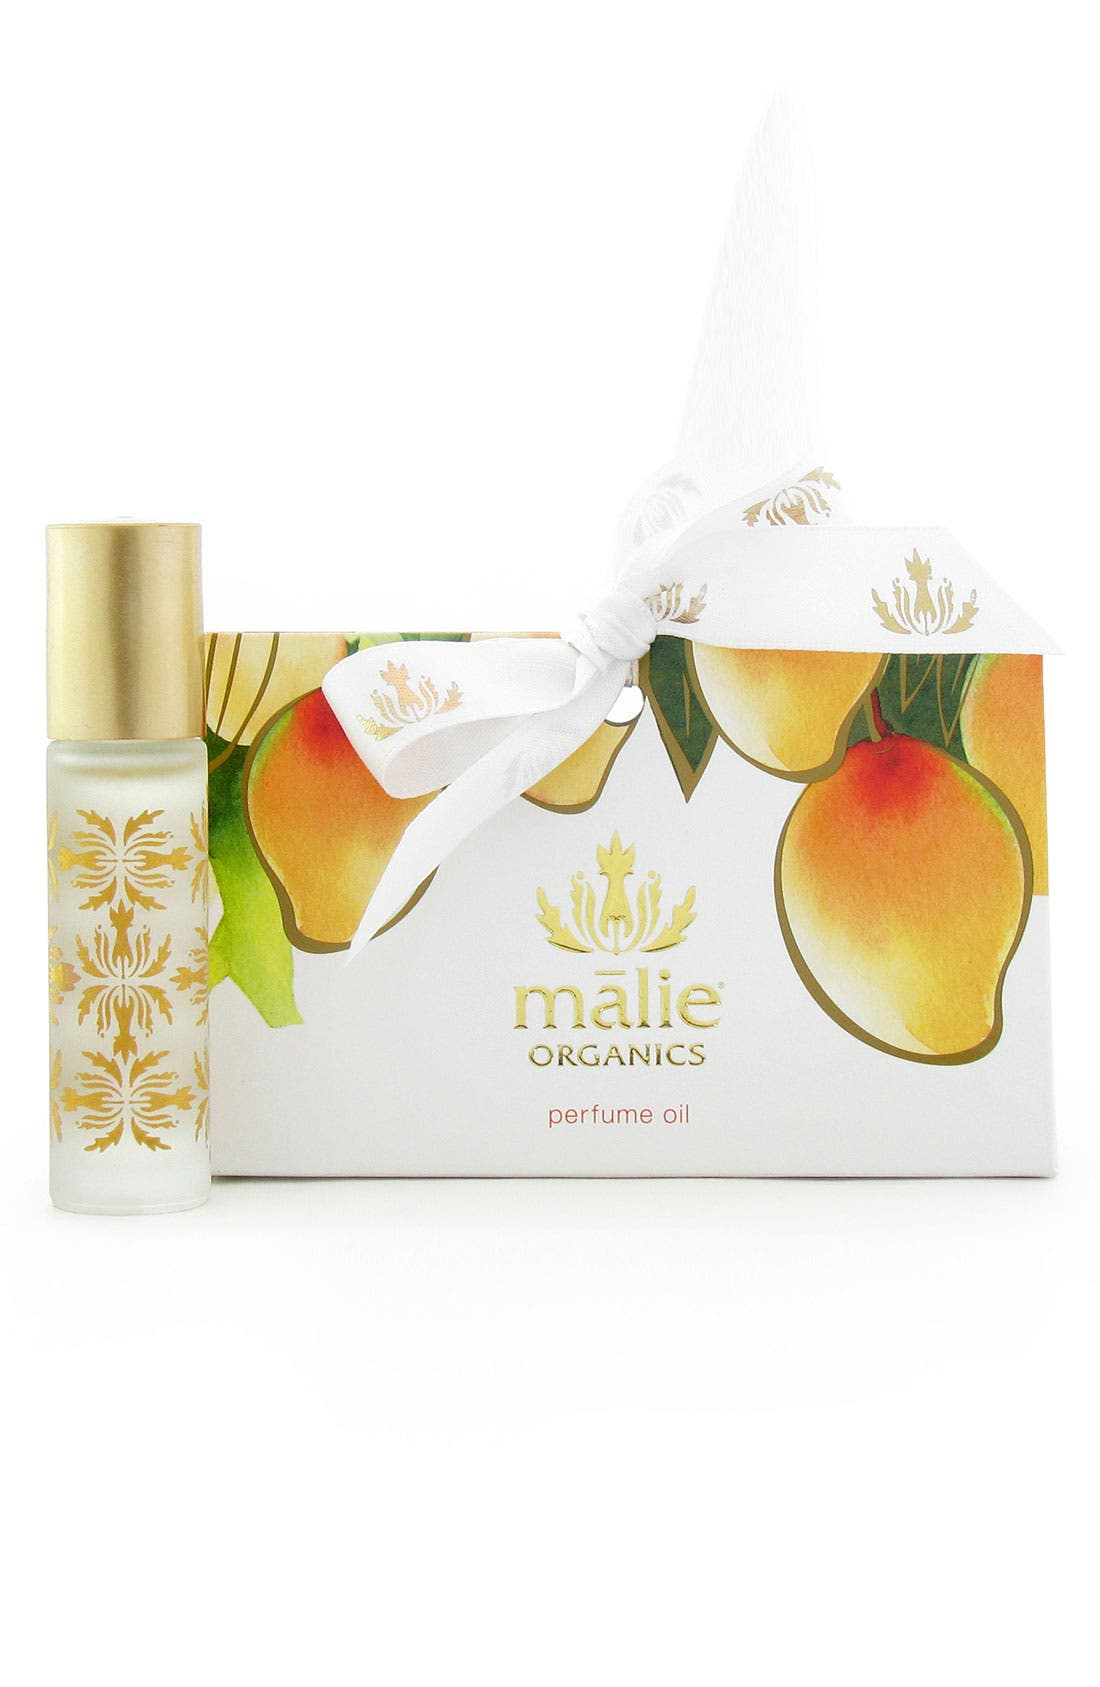 Mango Nectar Organic Roll-On Perfume Oil,                             Main thumbnail 1, color,                             000